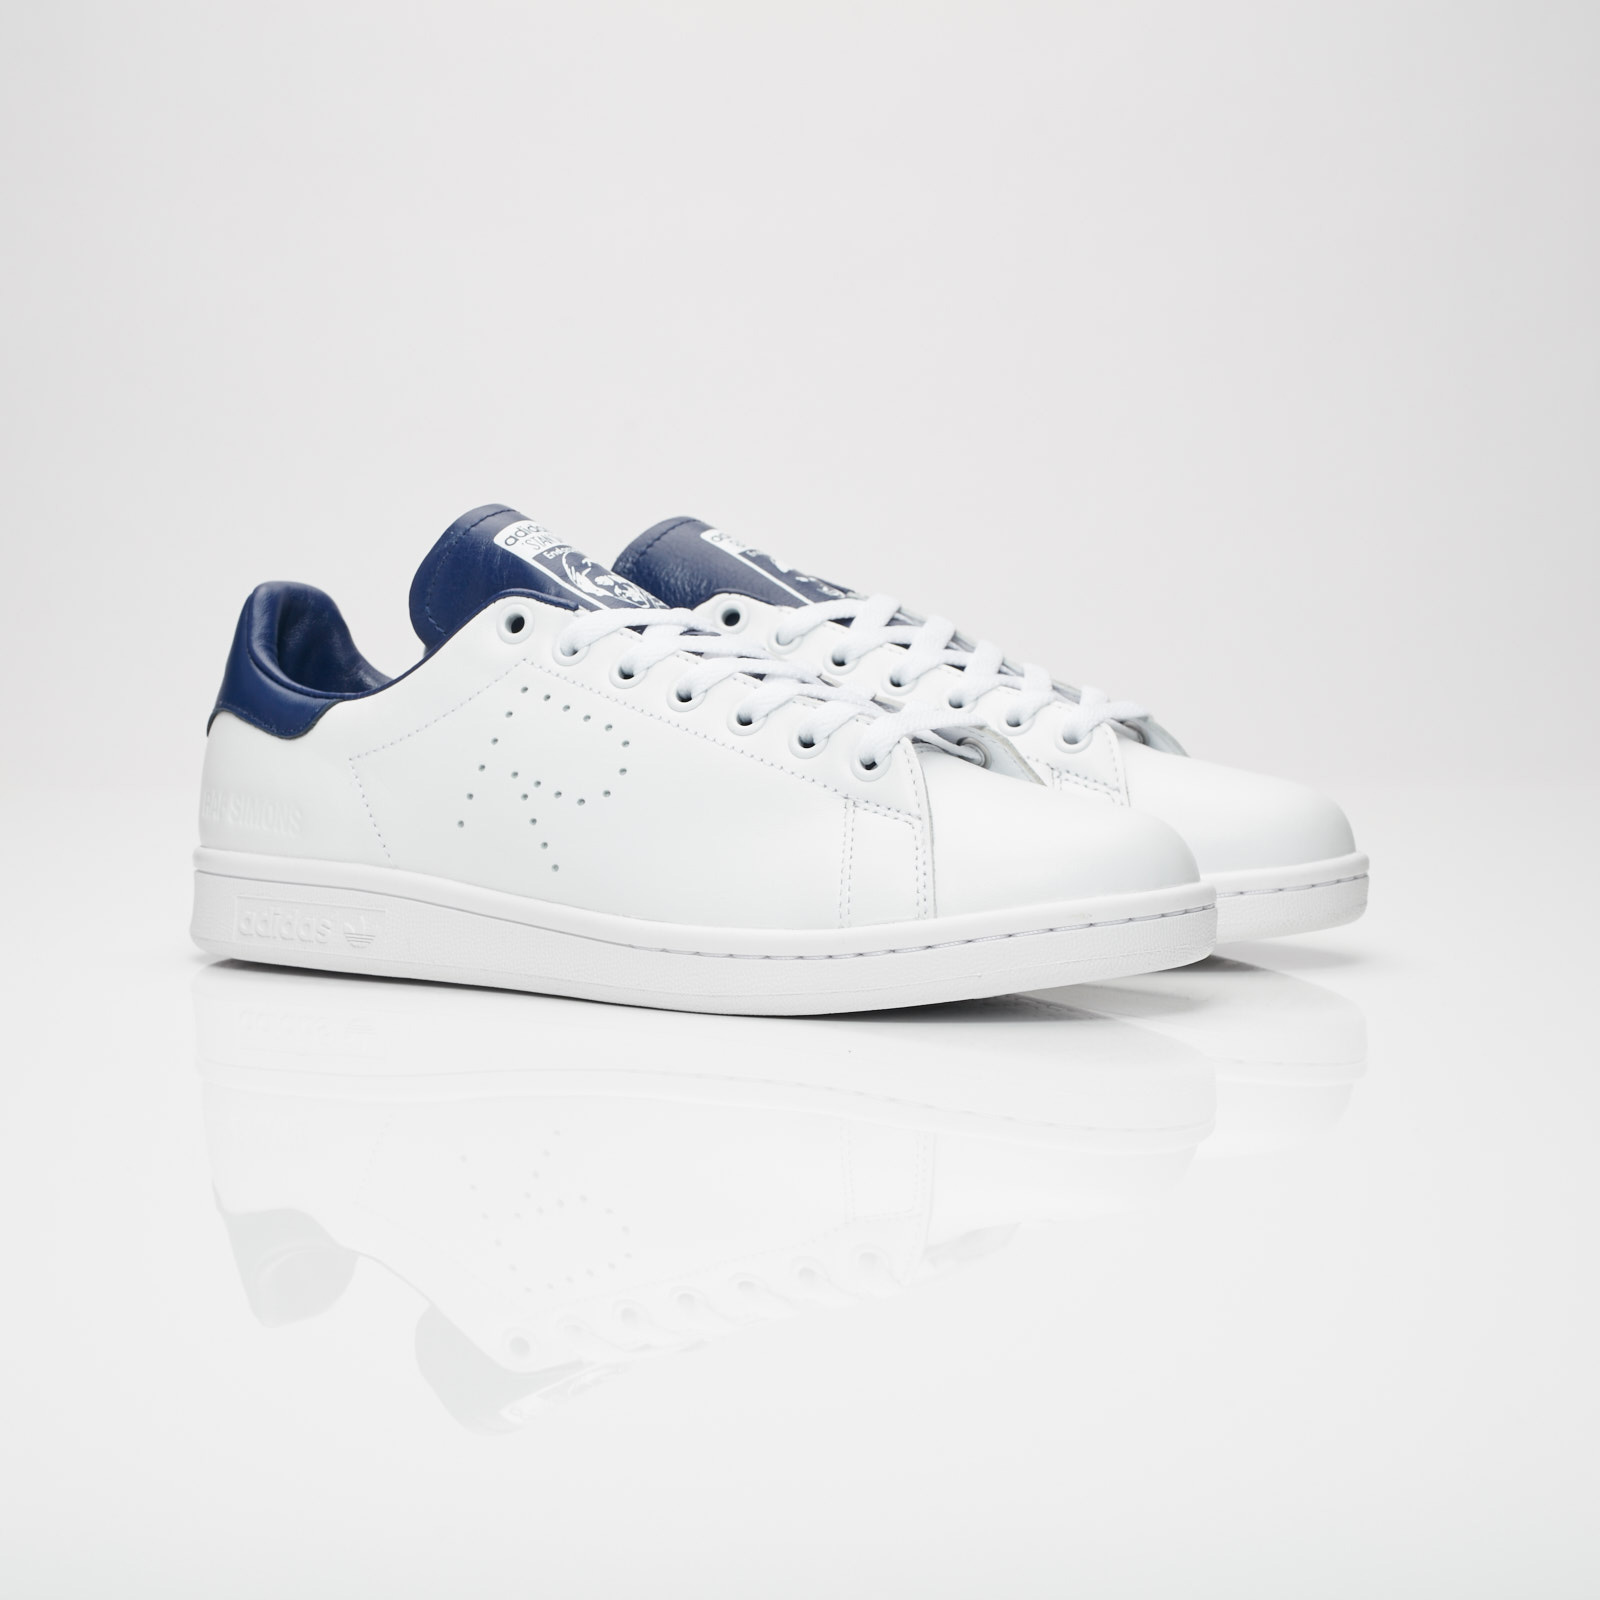 online store a2d53 c4f81 adidas Raf Simons Stan Smith - B22543 - Sneakersnstuff ...